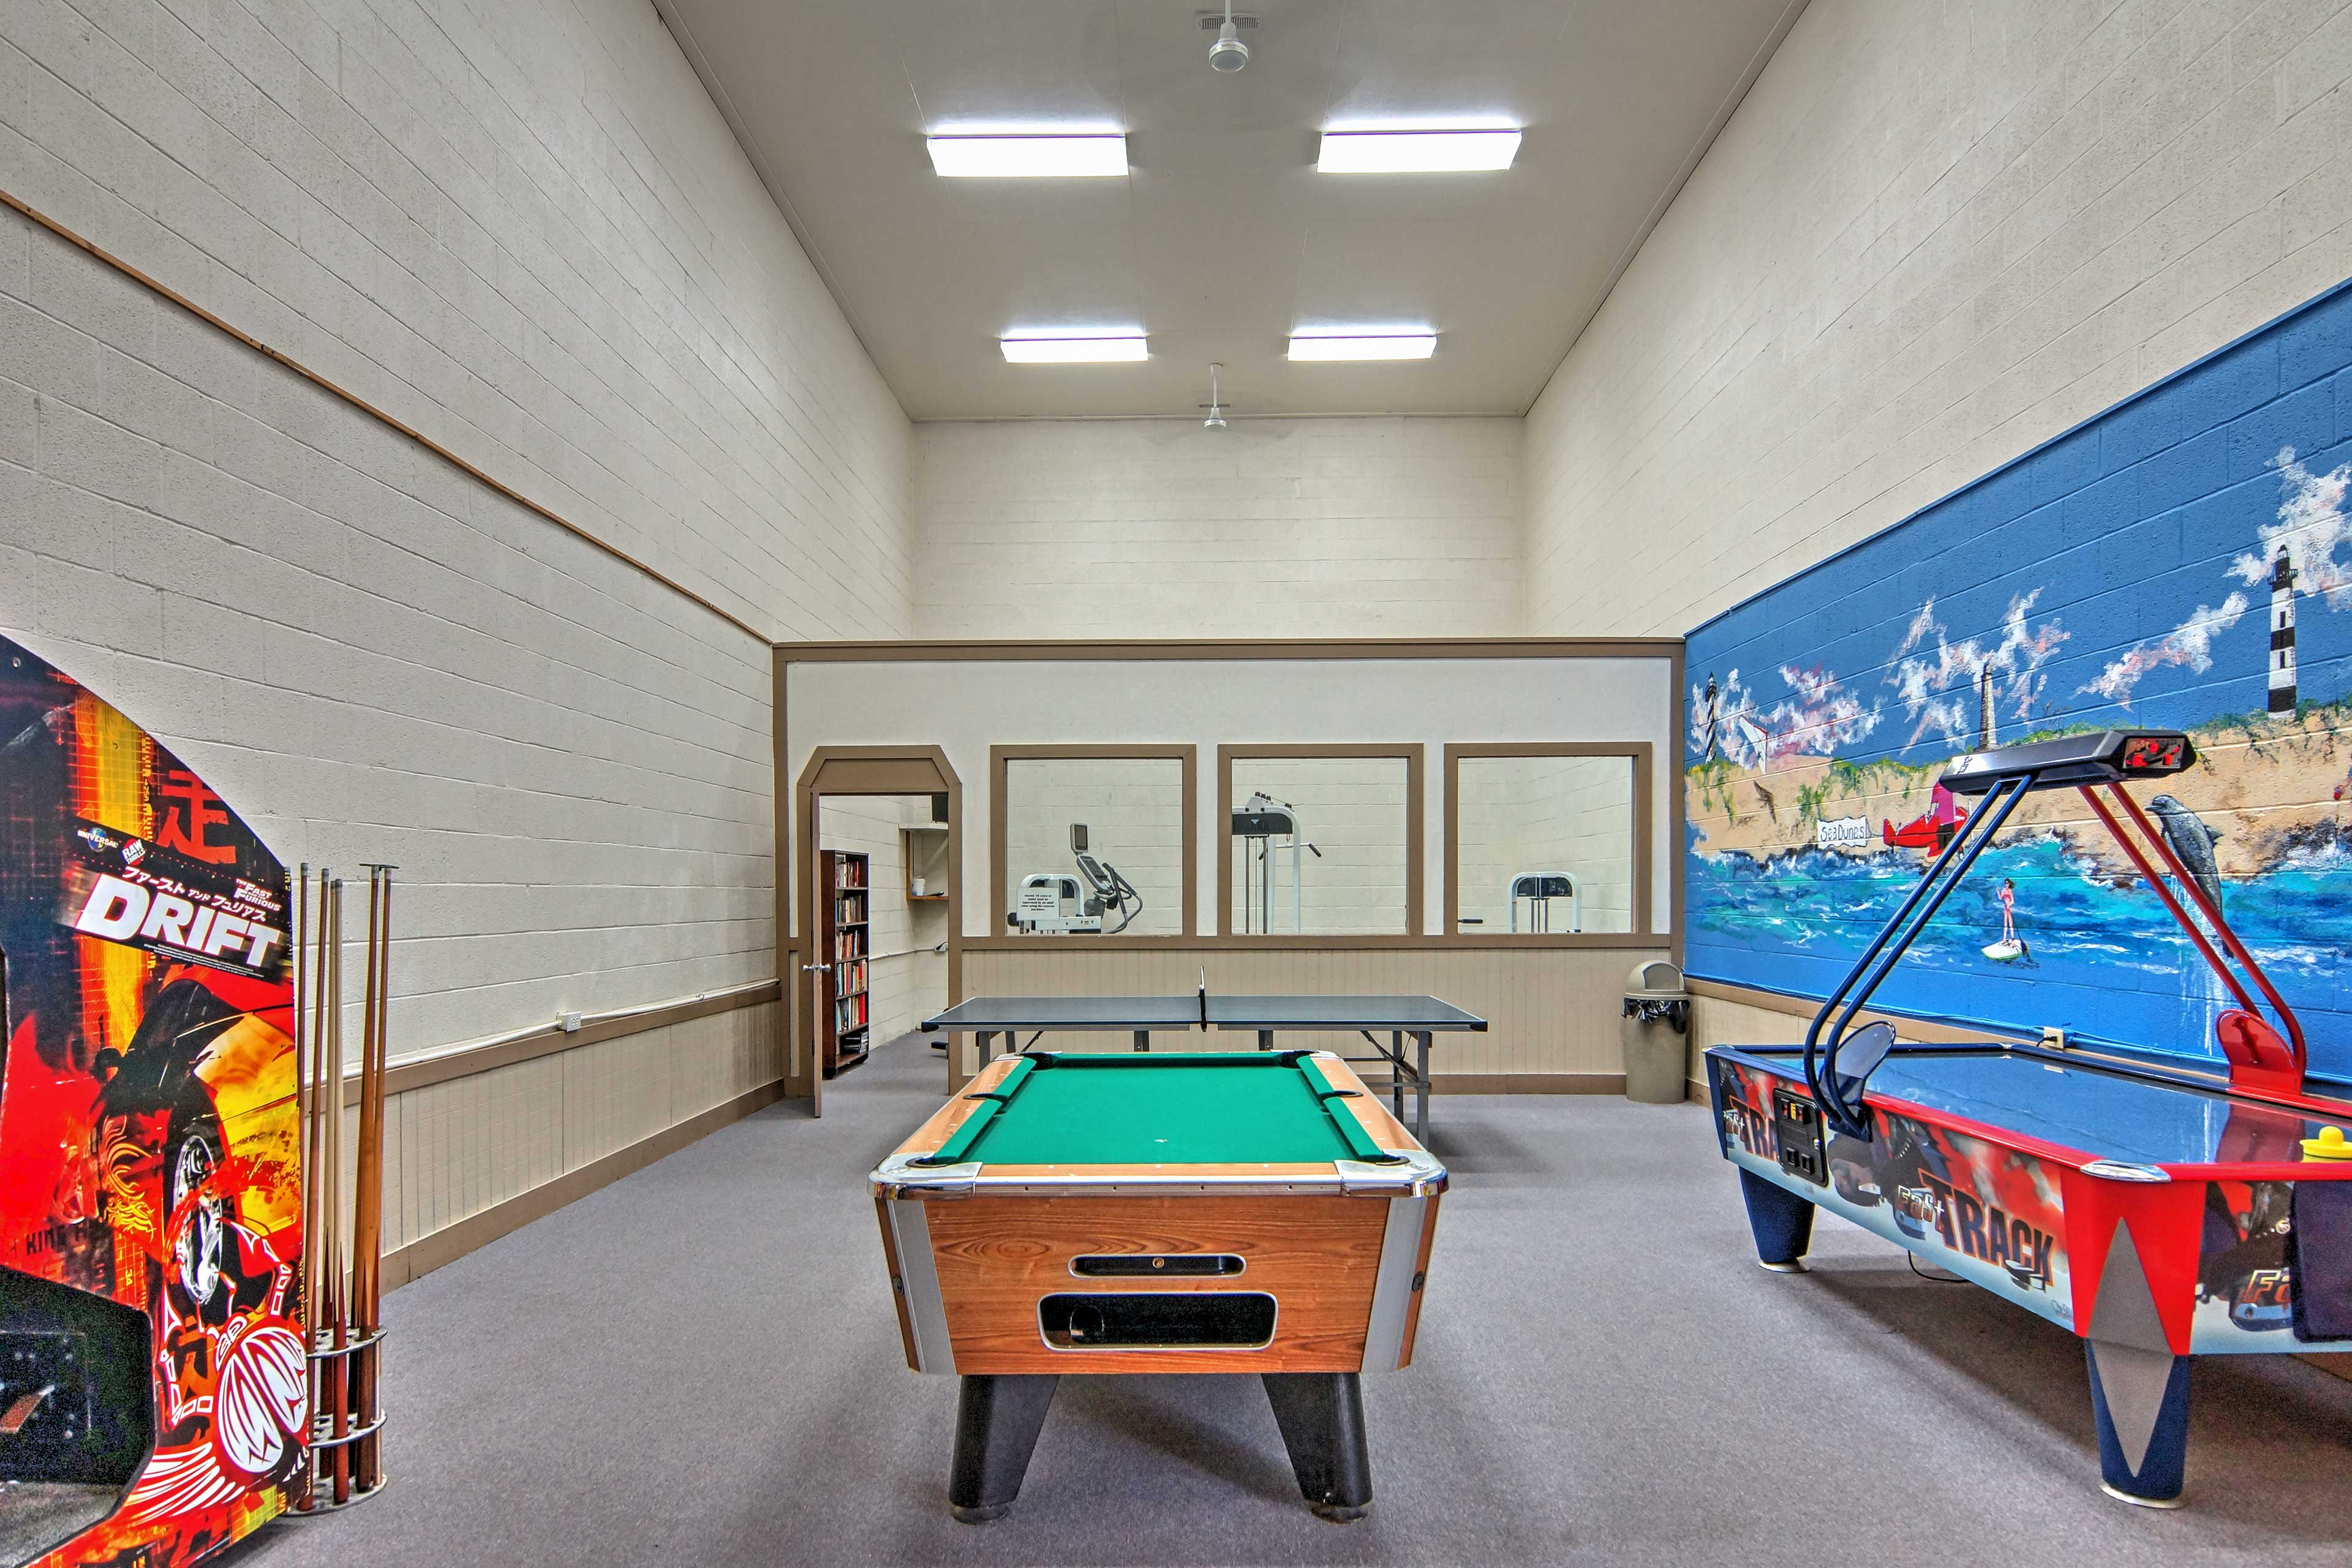 Check out the rec room with various games including pool and air-hockey.